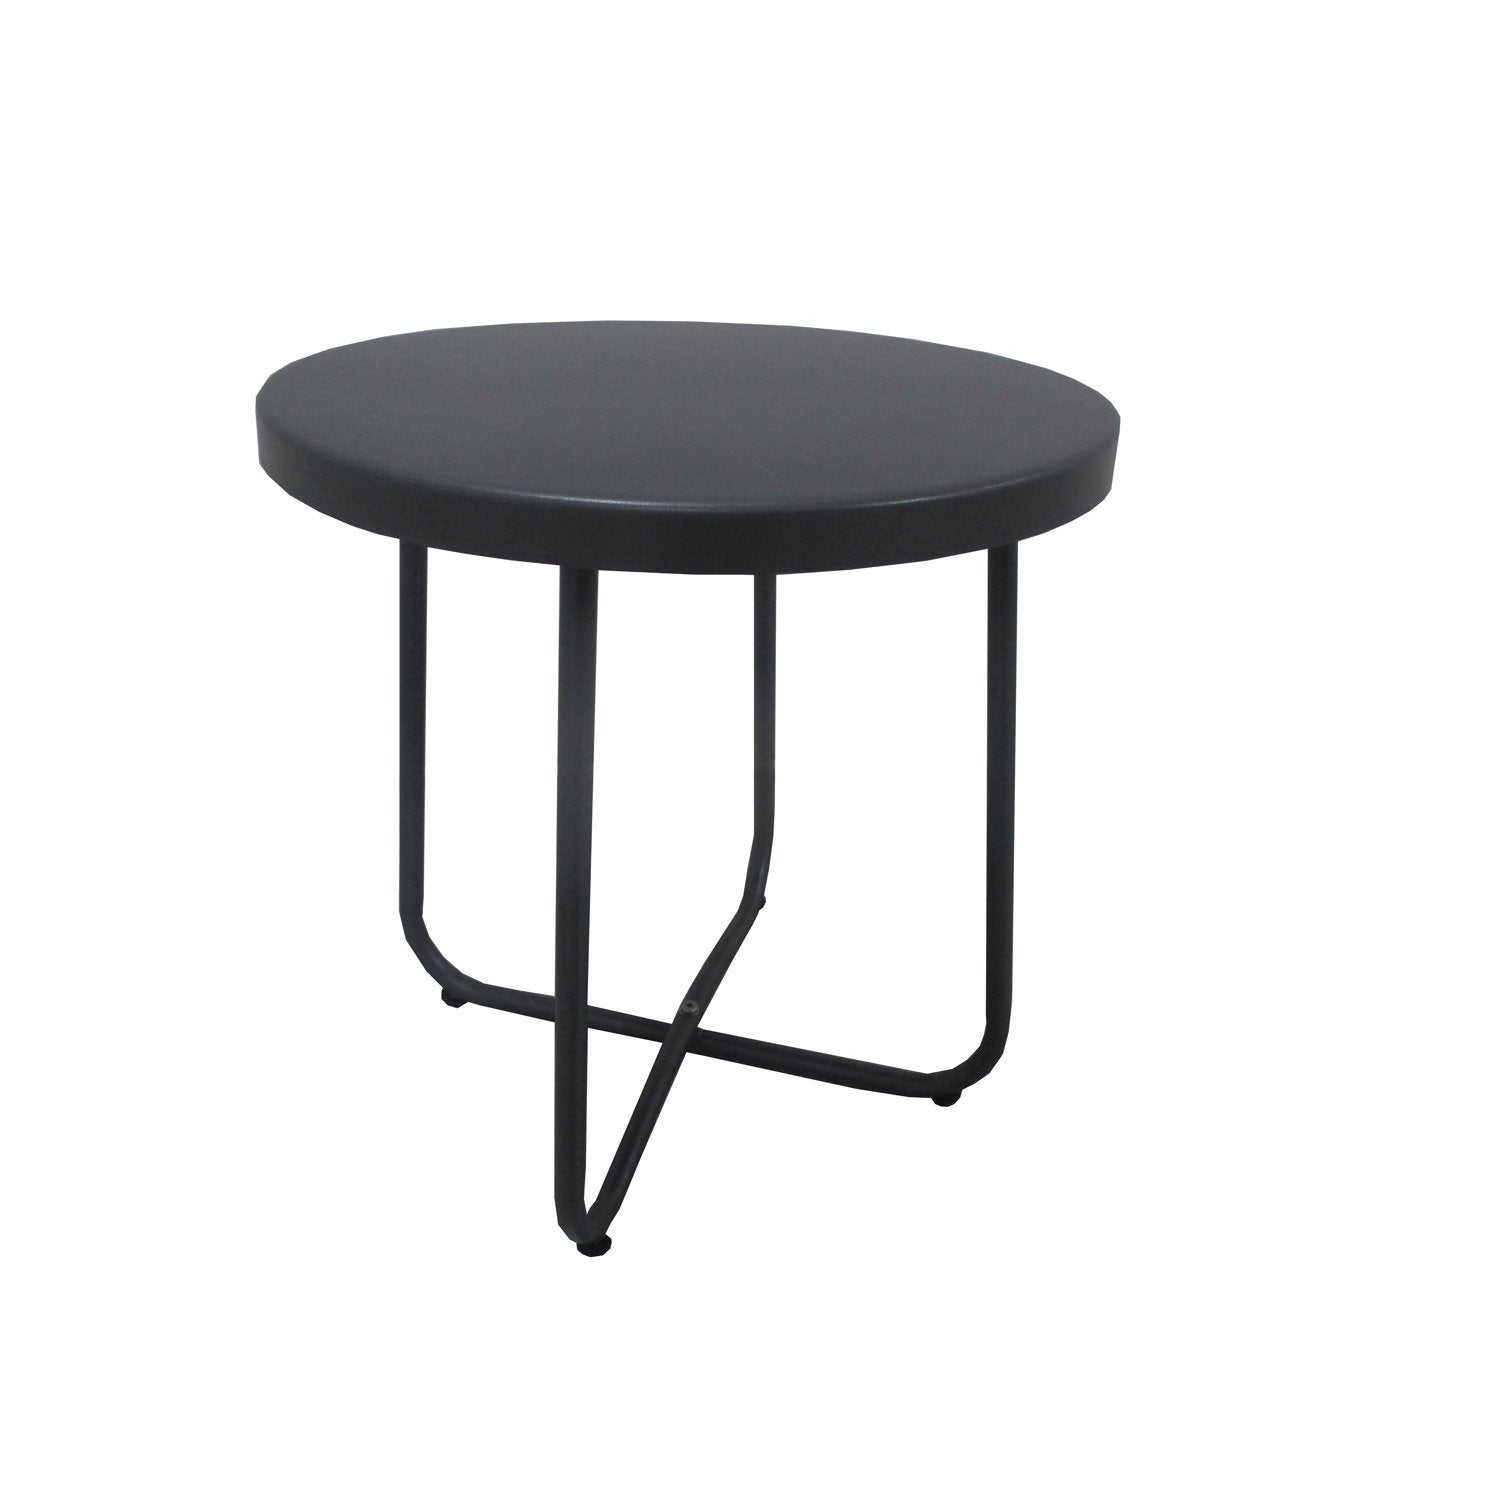 table de jardin bombay ronde anthracite 2 personnes. Black Bedroom Furniture Sets. Home Design Ideas